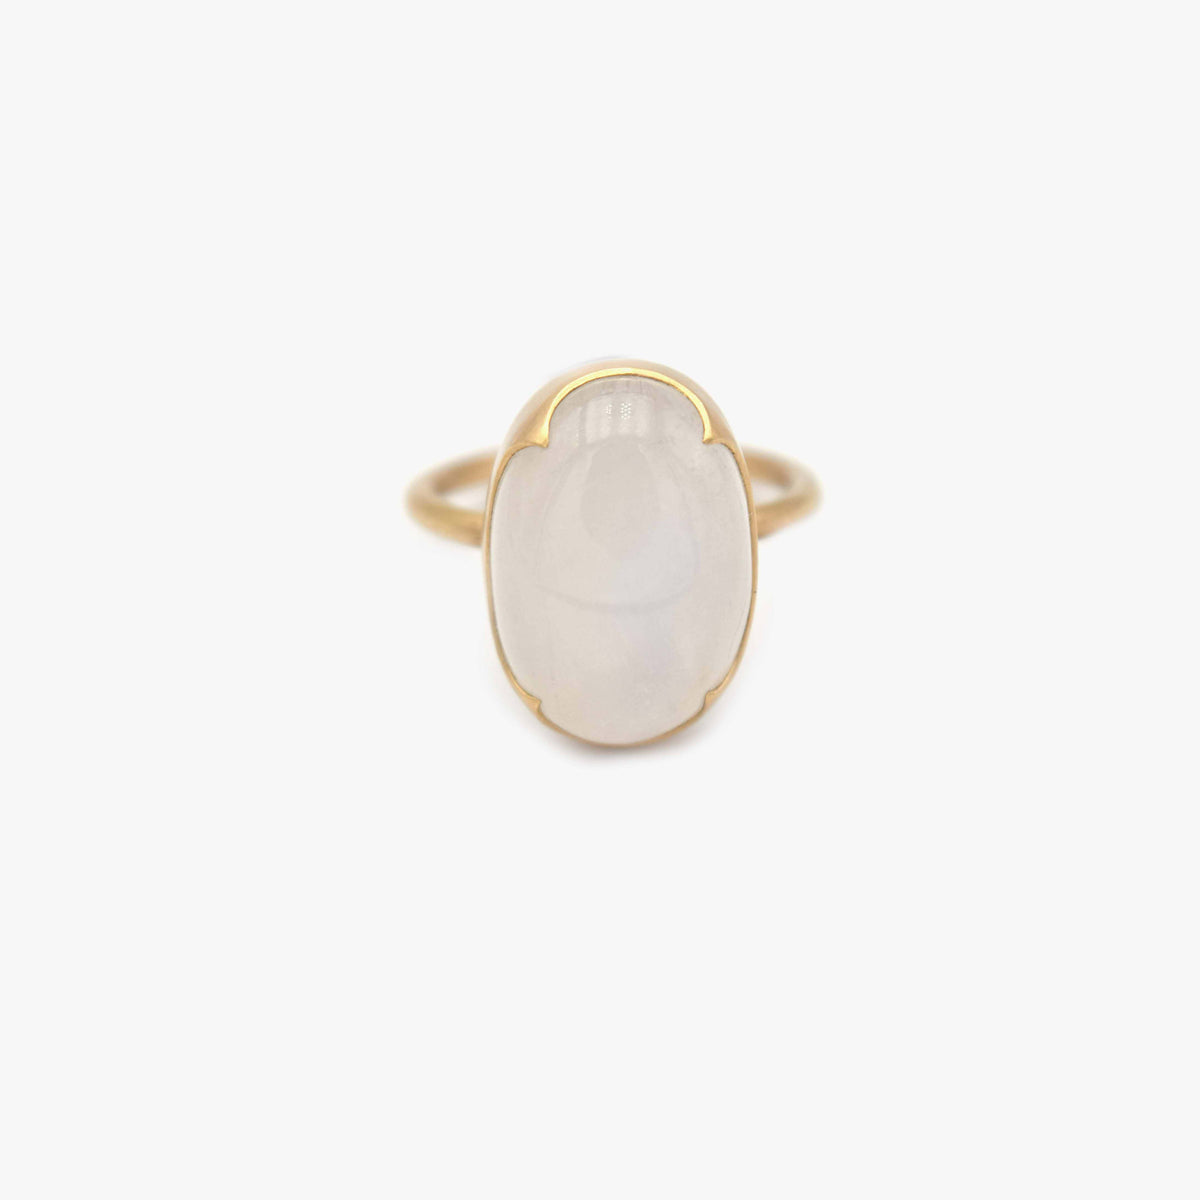 Large Oval White Moonstone Ring